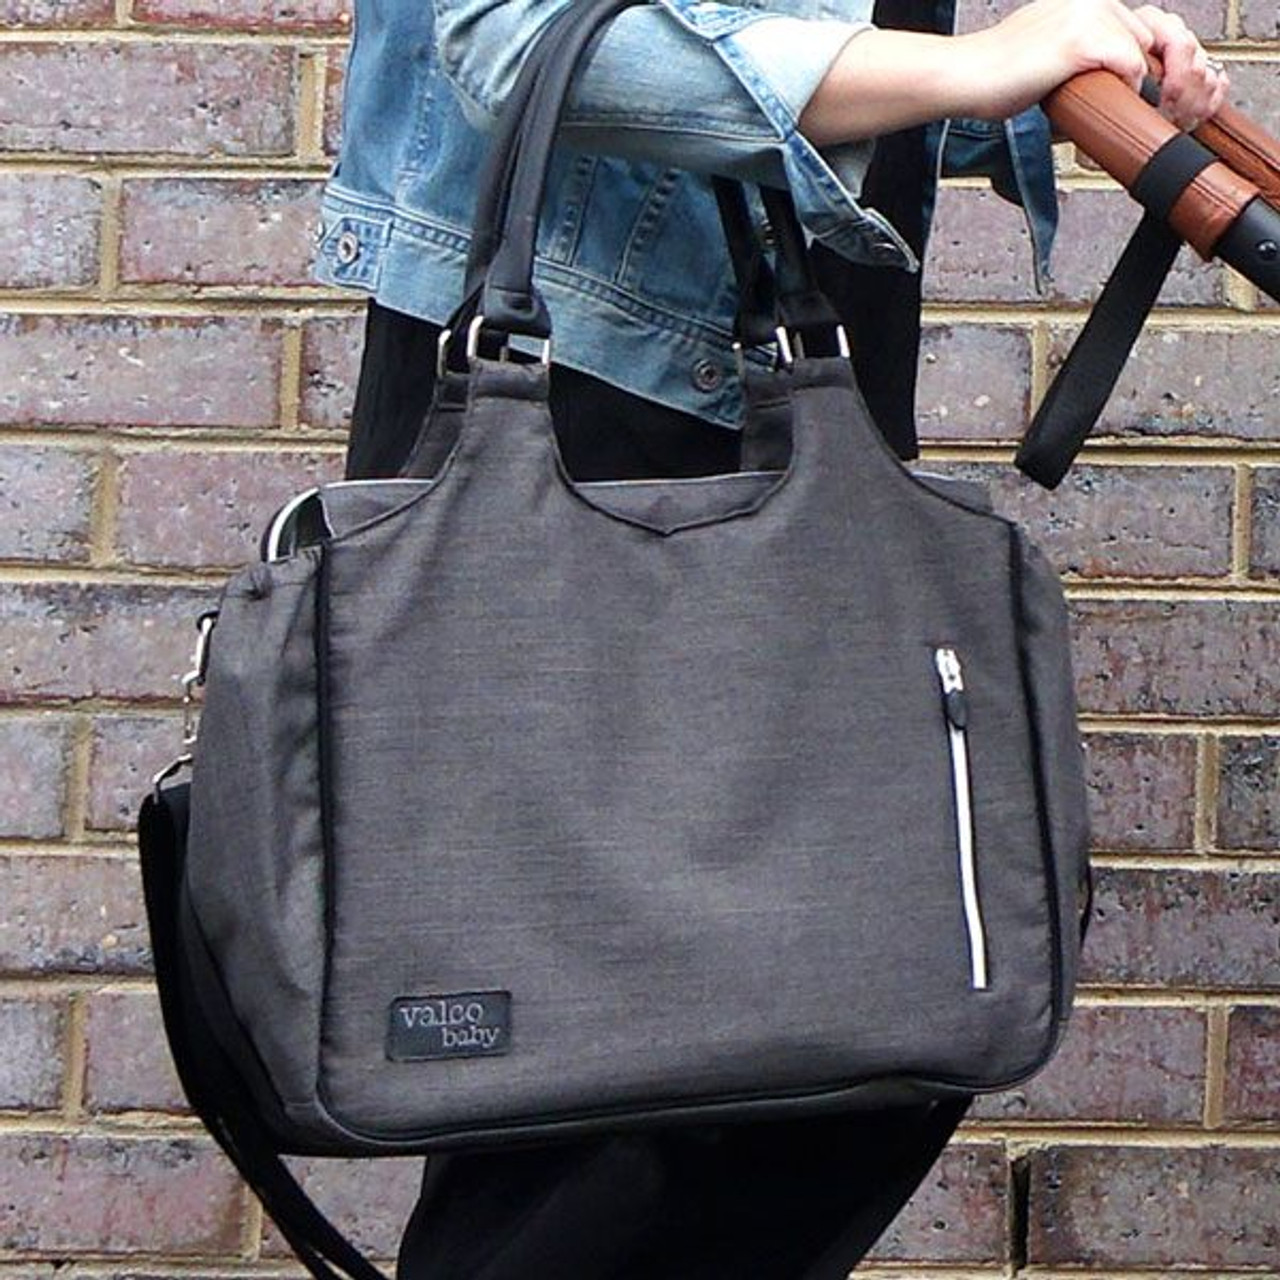 Valco Baby Mothers/ Nappy Bag - CHARCOAL